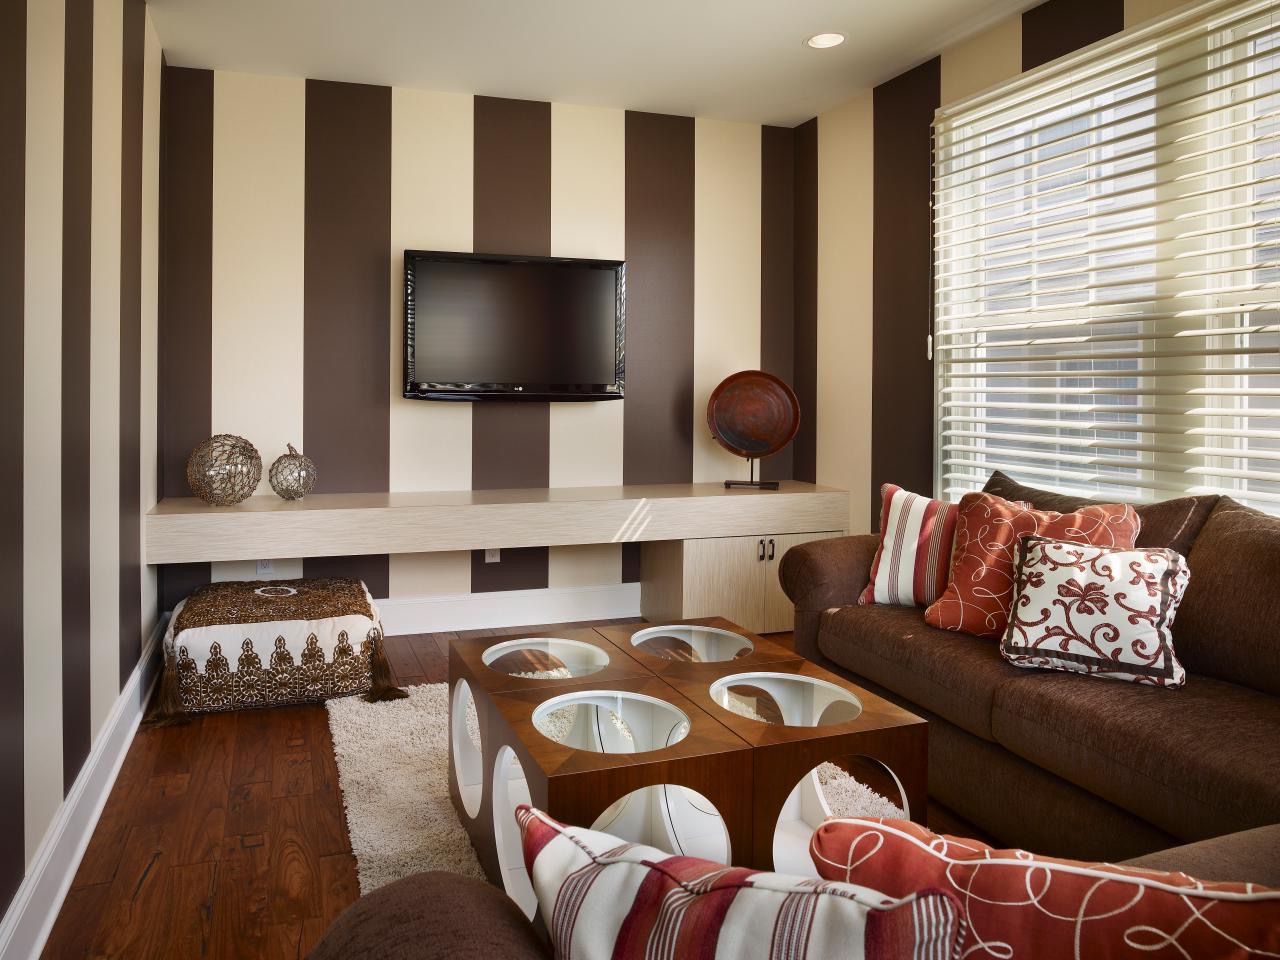 Brown And Cream Striped Color Palette For Apartment Modern Living Room (Image 4 of 20)